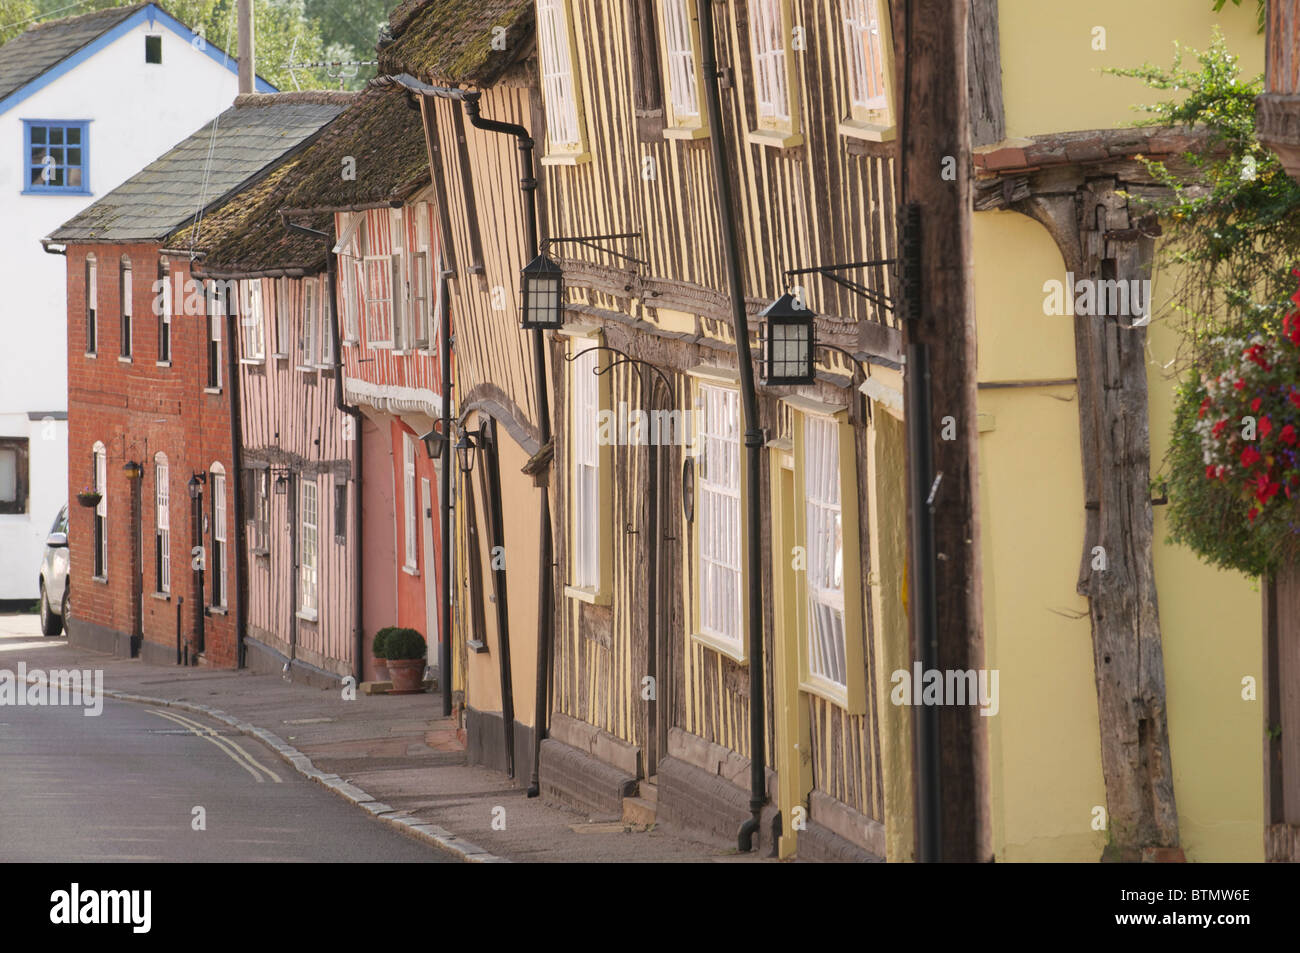 Buildings in the Historic Wool Village of Lavenham in Suffolk - Stock Image